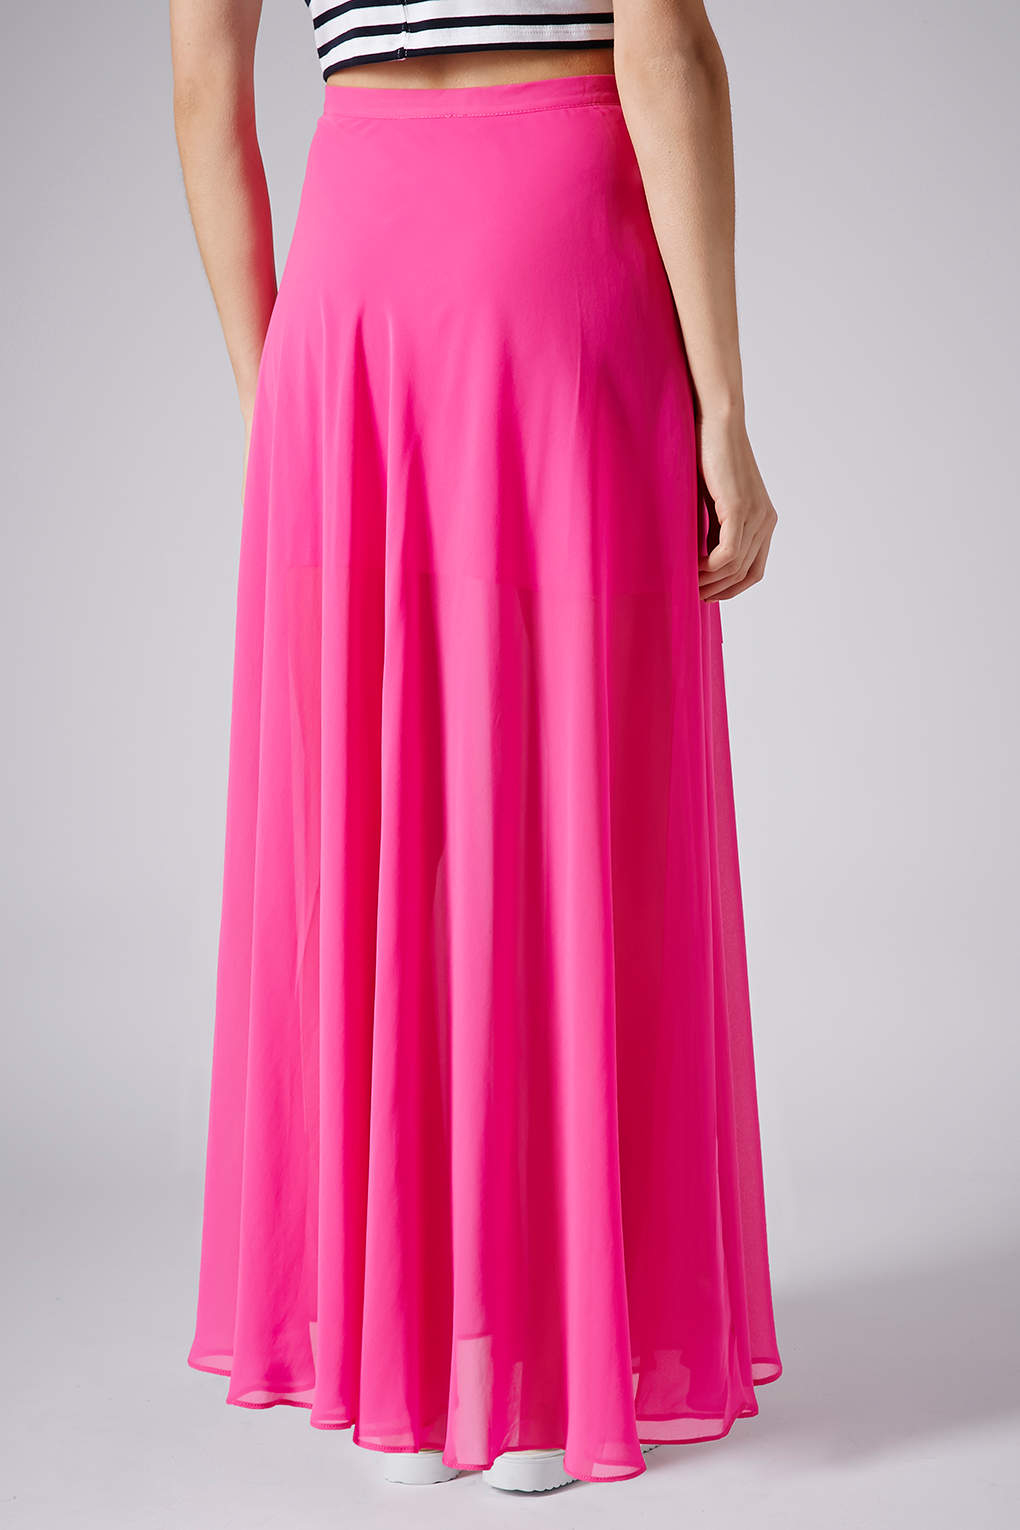 4dbac052eae TOPSHOP Pink Chiffon Maxi Skirt in Pink - Lyst